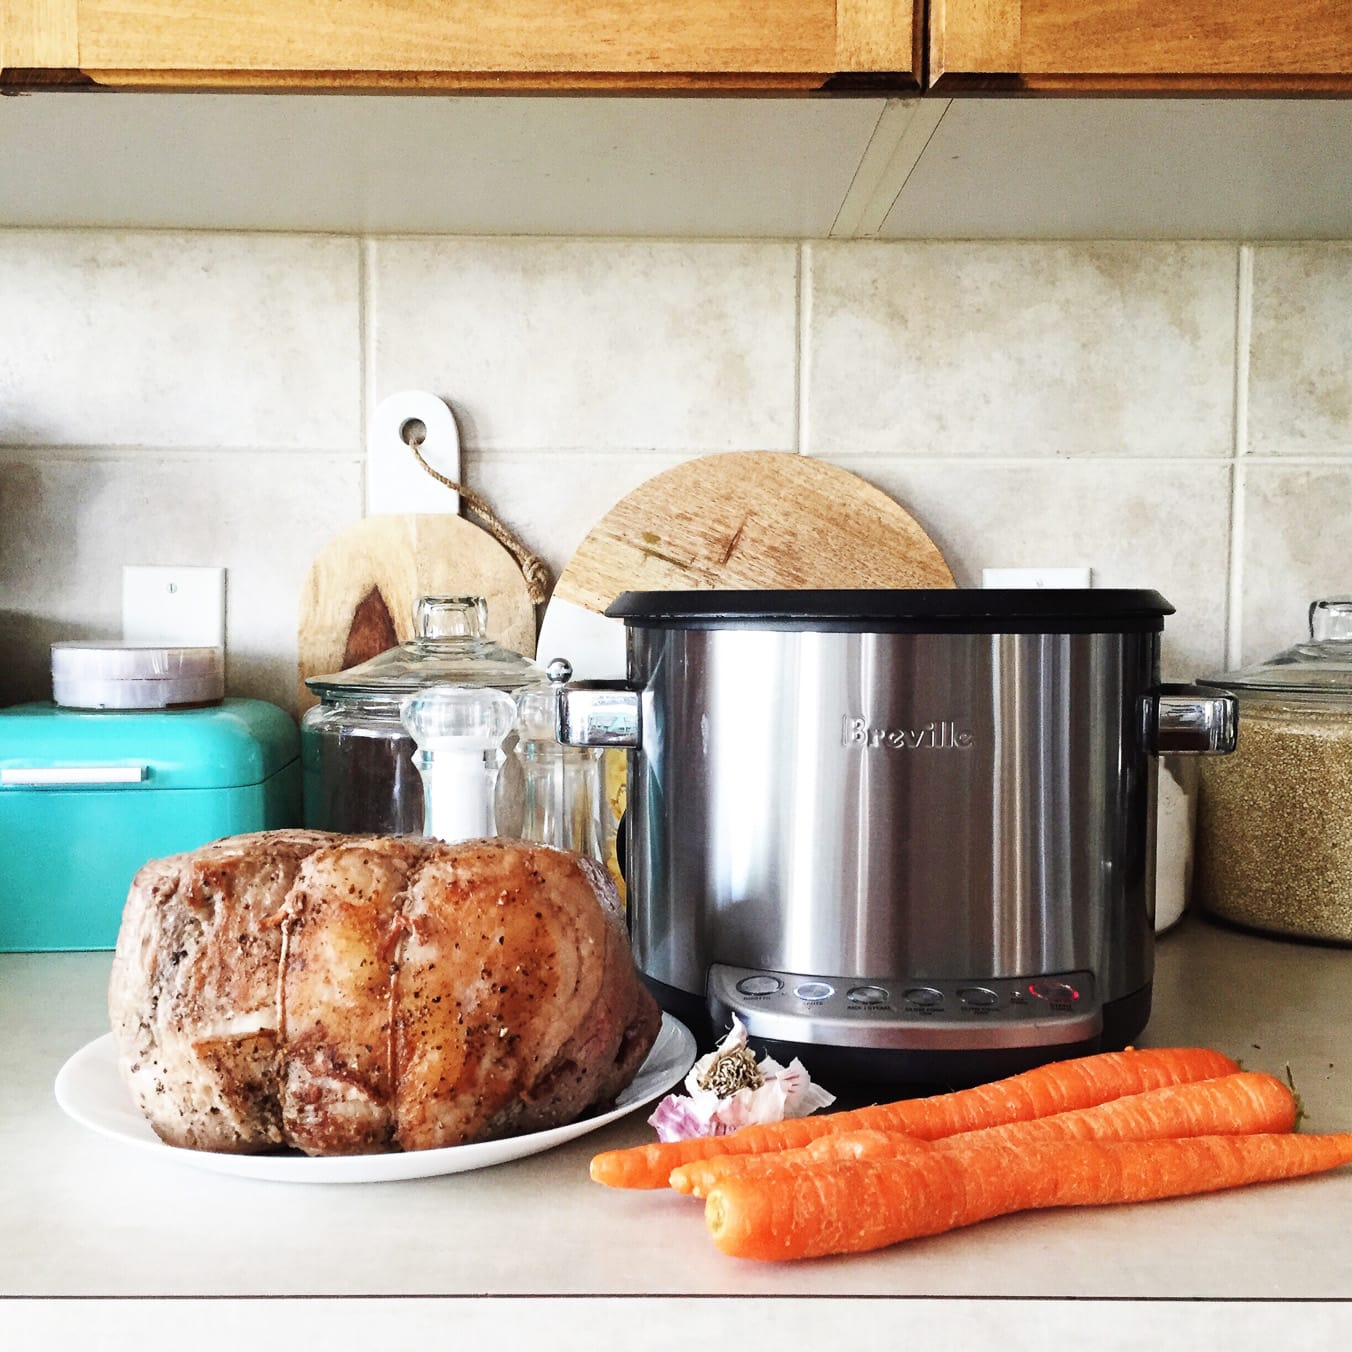 Simple Ways to Stretch Your Meals: Cook a roast, then make soup from leftovers